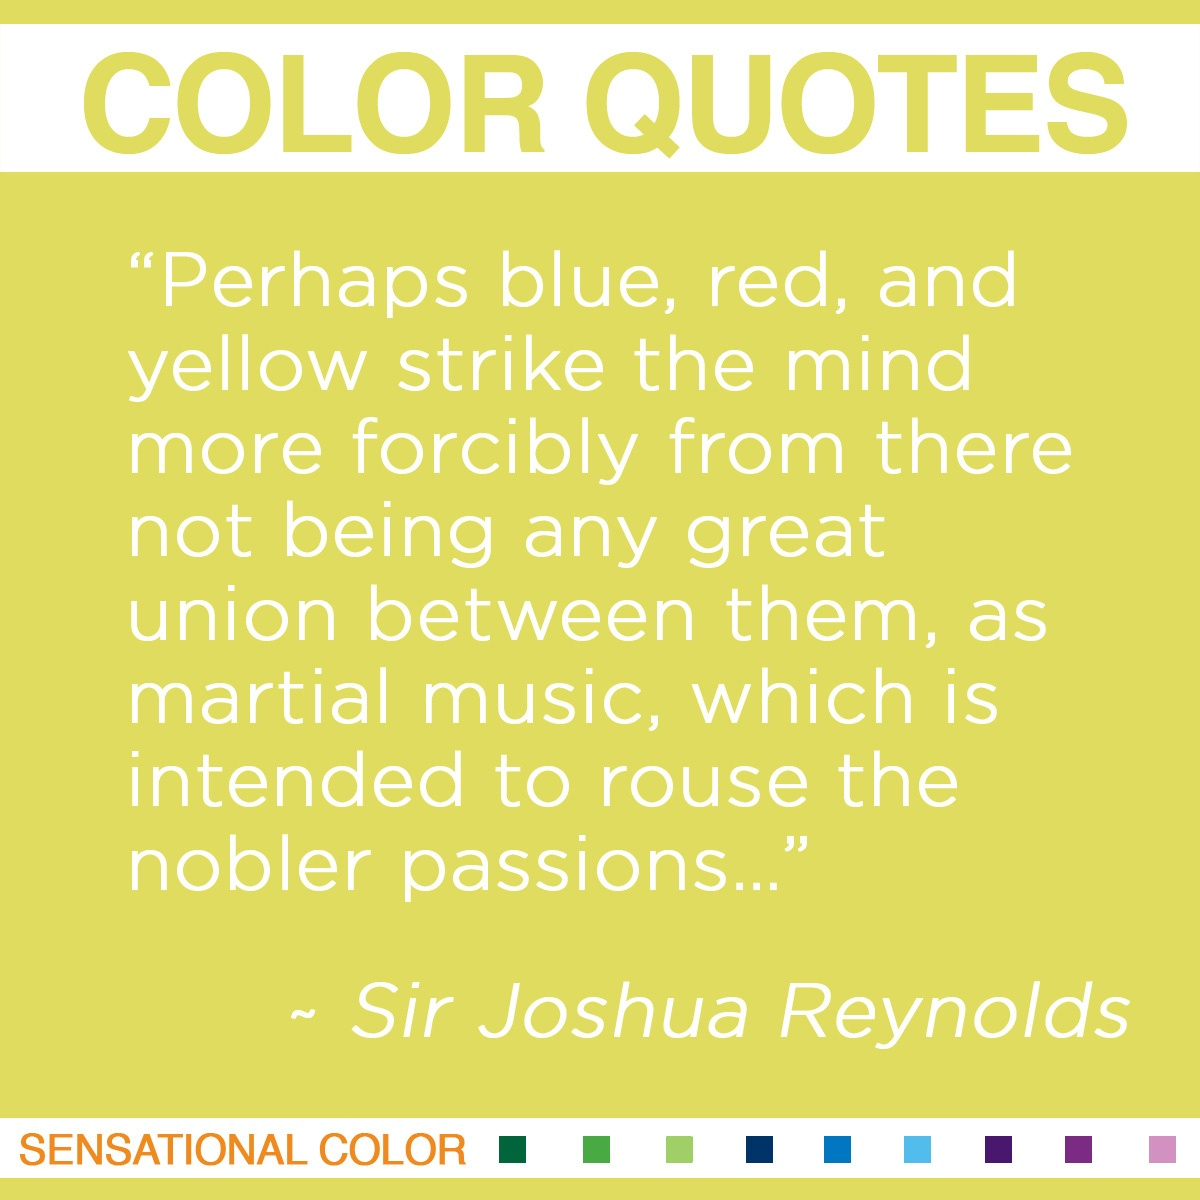 """Perhaps blue, red, and yellow strike the mind more forcibly from there not being any great union between them, as martial music, which is intended to rouse the nobler passions…""  - Sir Joshua Reynolds"